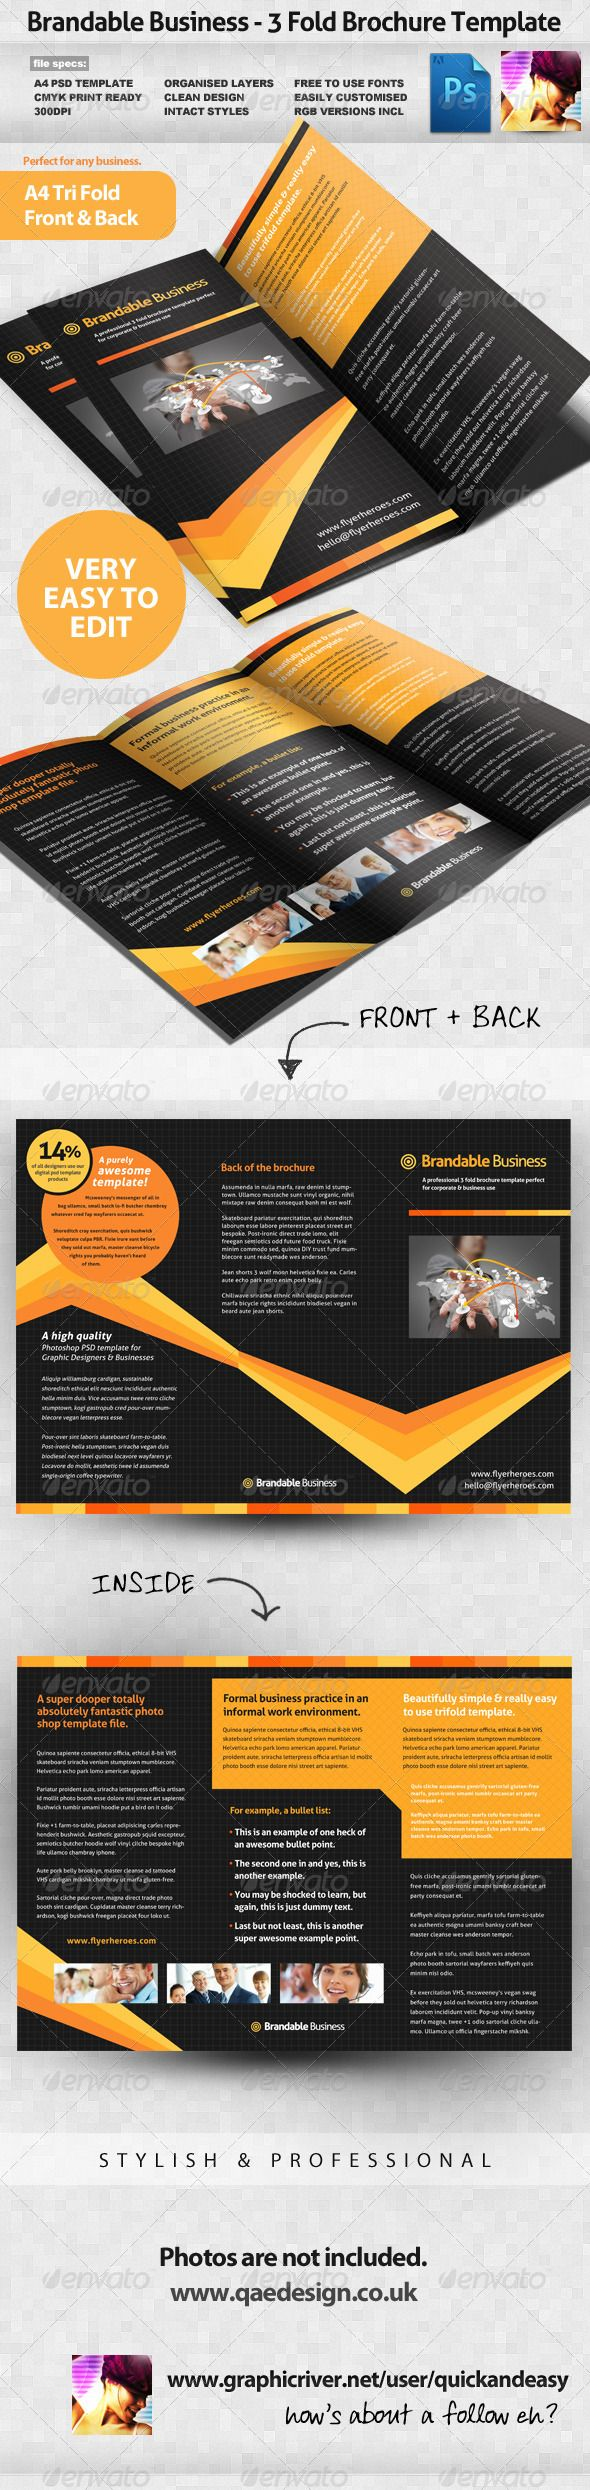 Wonderful 1 Week Schedule Template Small 10 Steps To Creating An Effective Resume Flat 1099 Excel Template 11x17 Poster Template Young 12 Piece Puzzle Template Bright13b Porting Templates 25  Best Ideas About Pamphlet Template On Pinterest | Portfolio ..